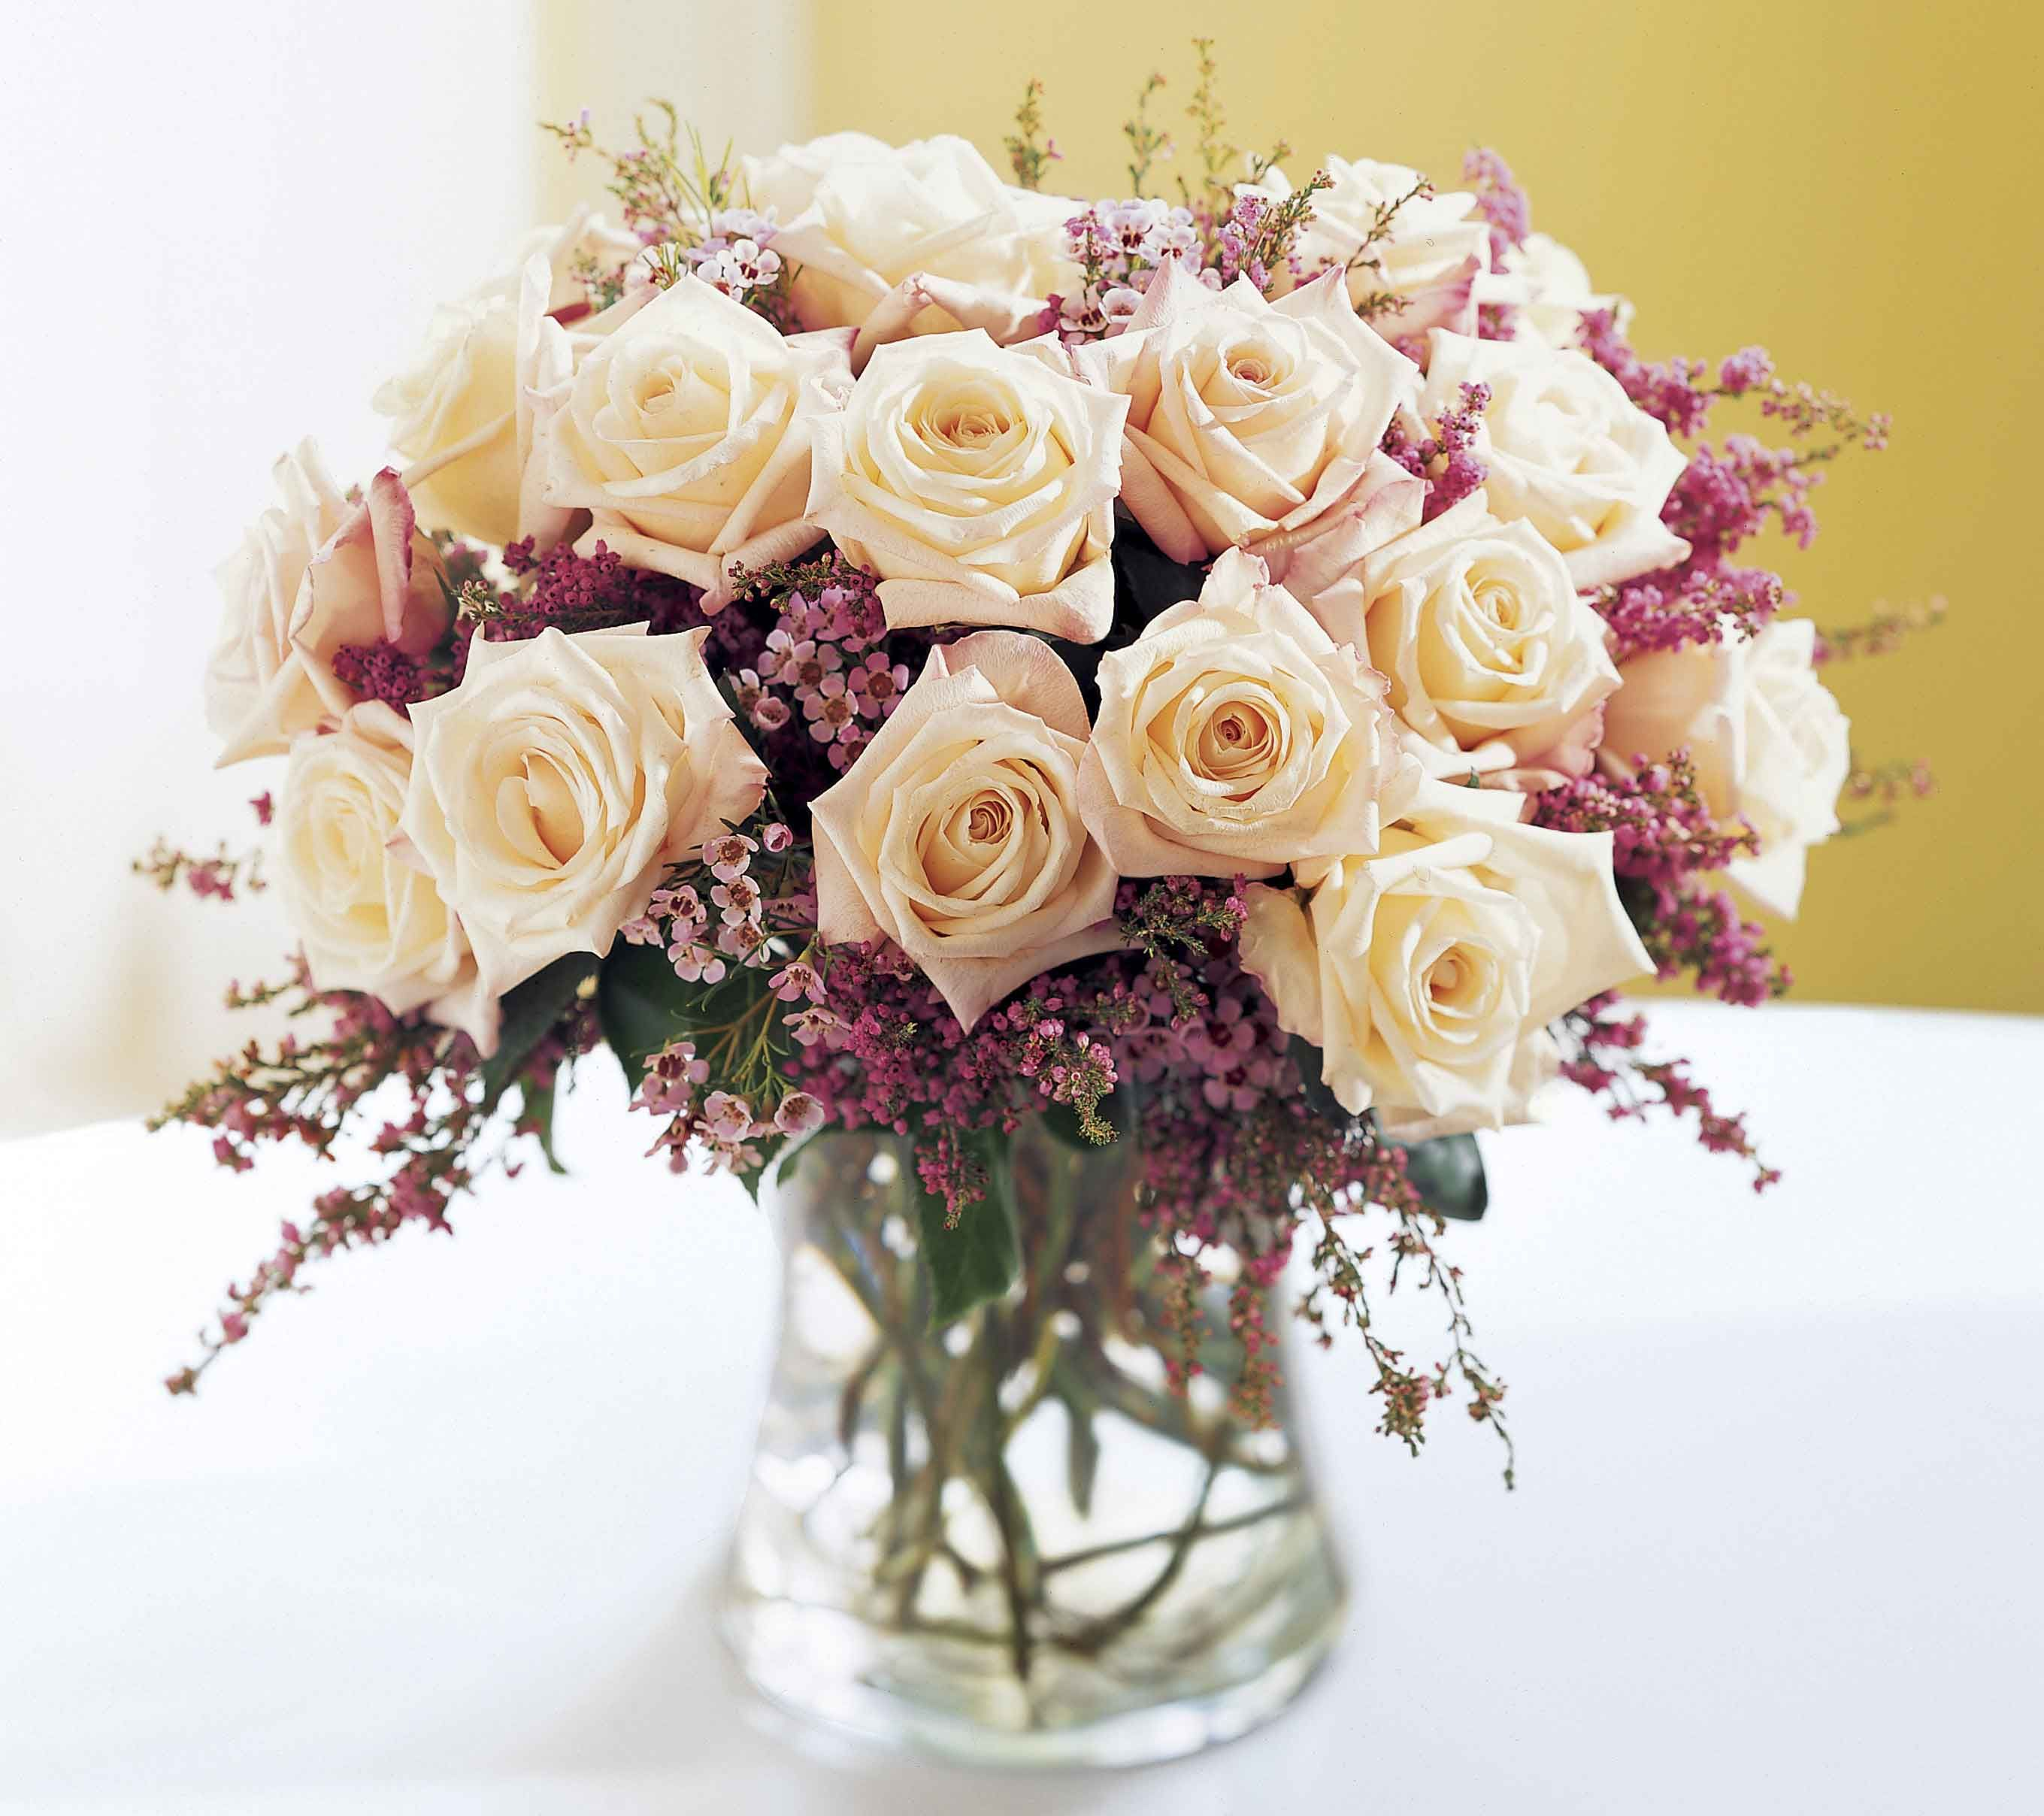 Flower Arrangements Picture Perfect Flowers  Socialcafe Magazine  Home & Decorating